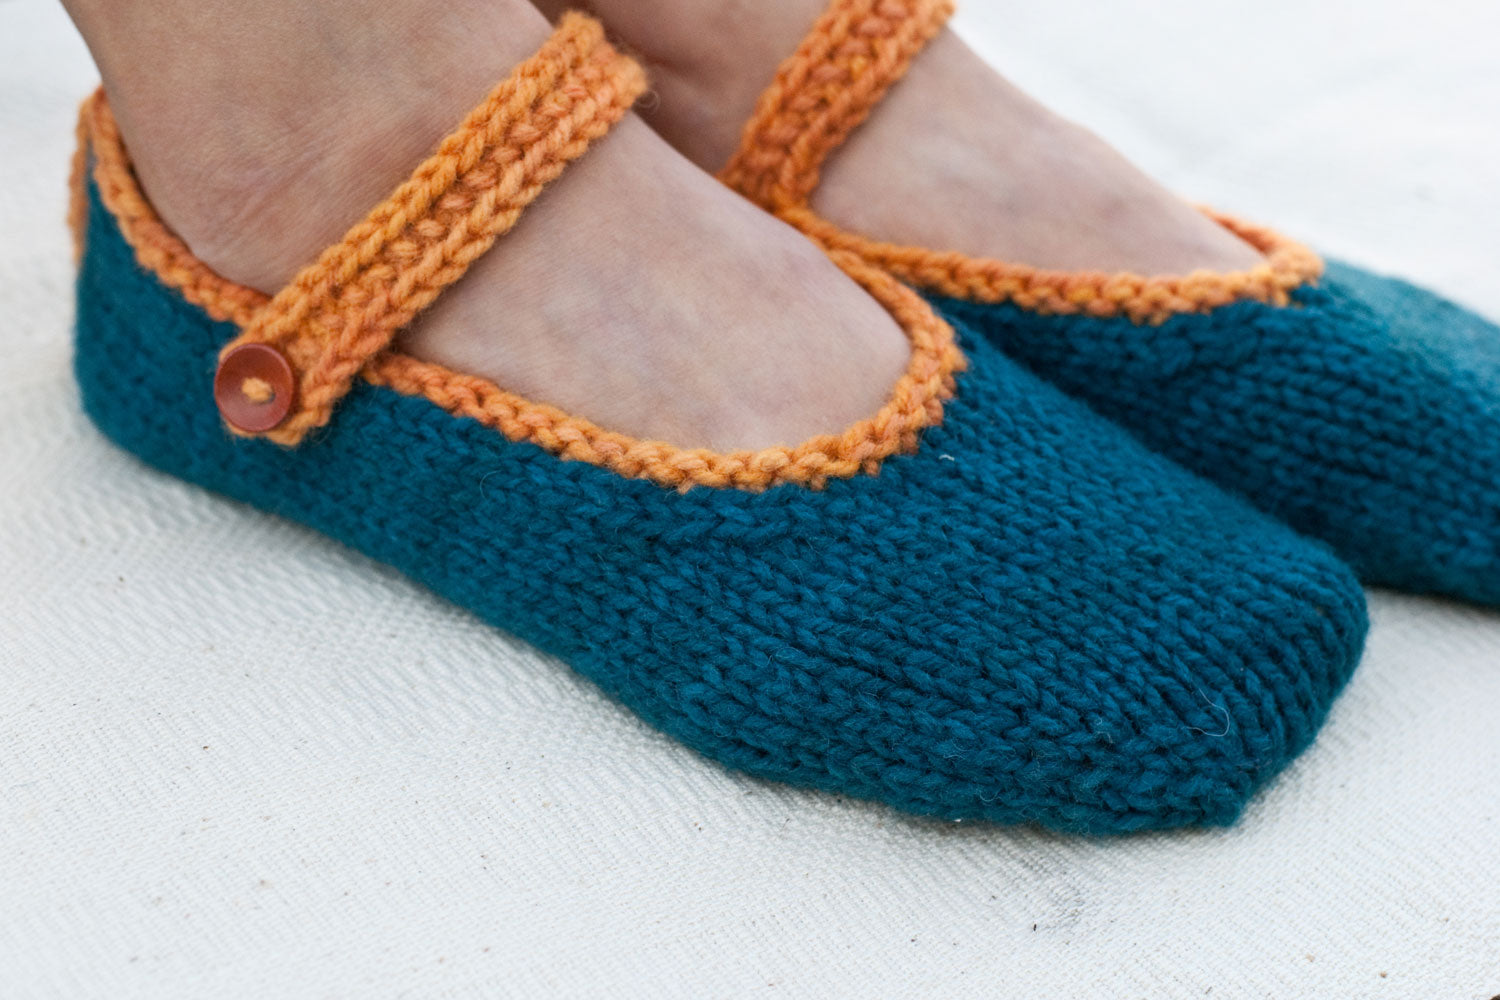 woman's feet wearing sporty hand-knit slippers in dark teal with an orange strap and button